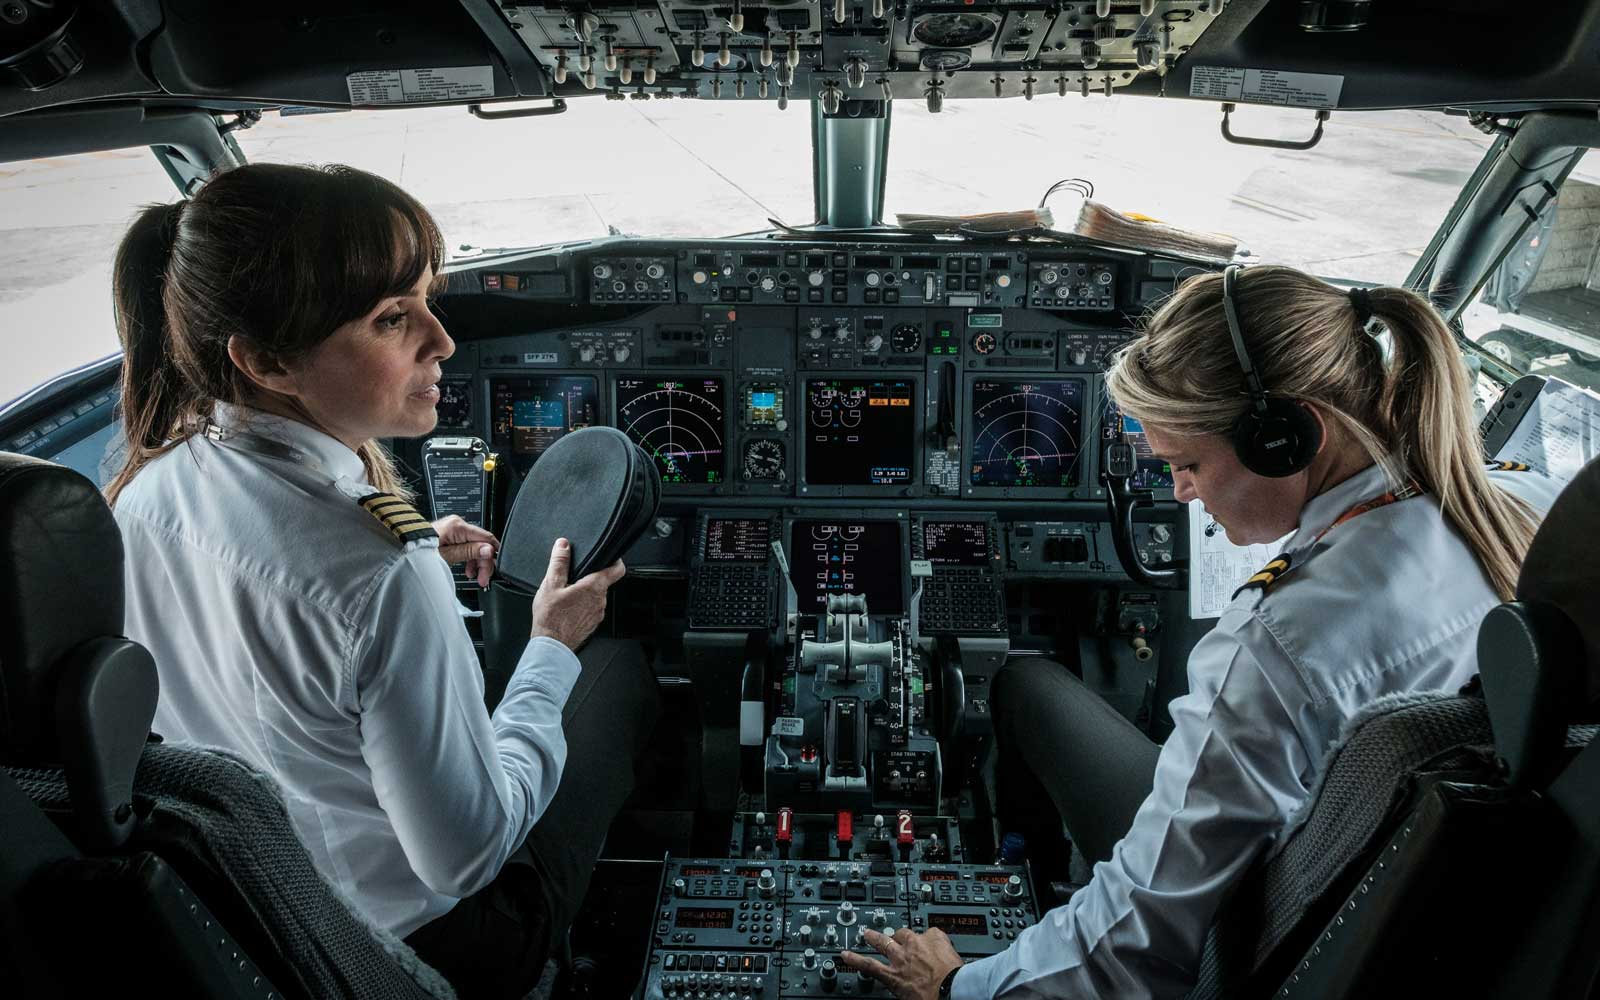 Women Helped Build the Airline Industry — Why Aren't There More Female Pilots and CEOs?